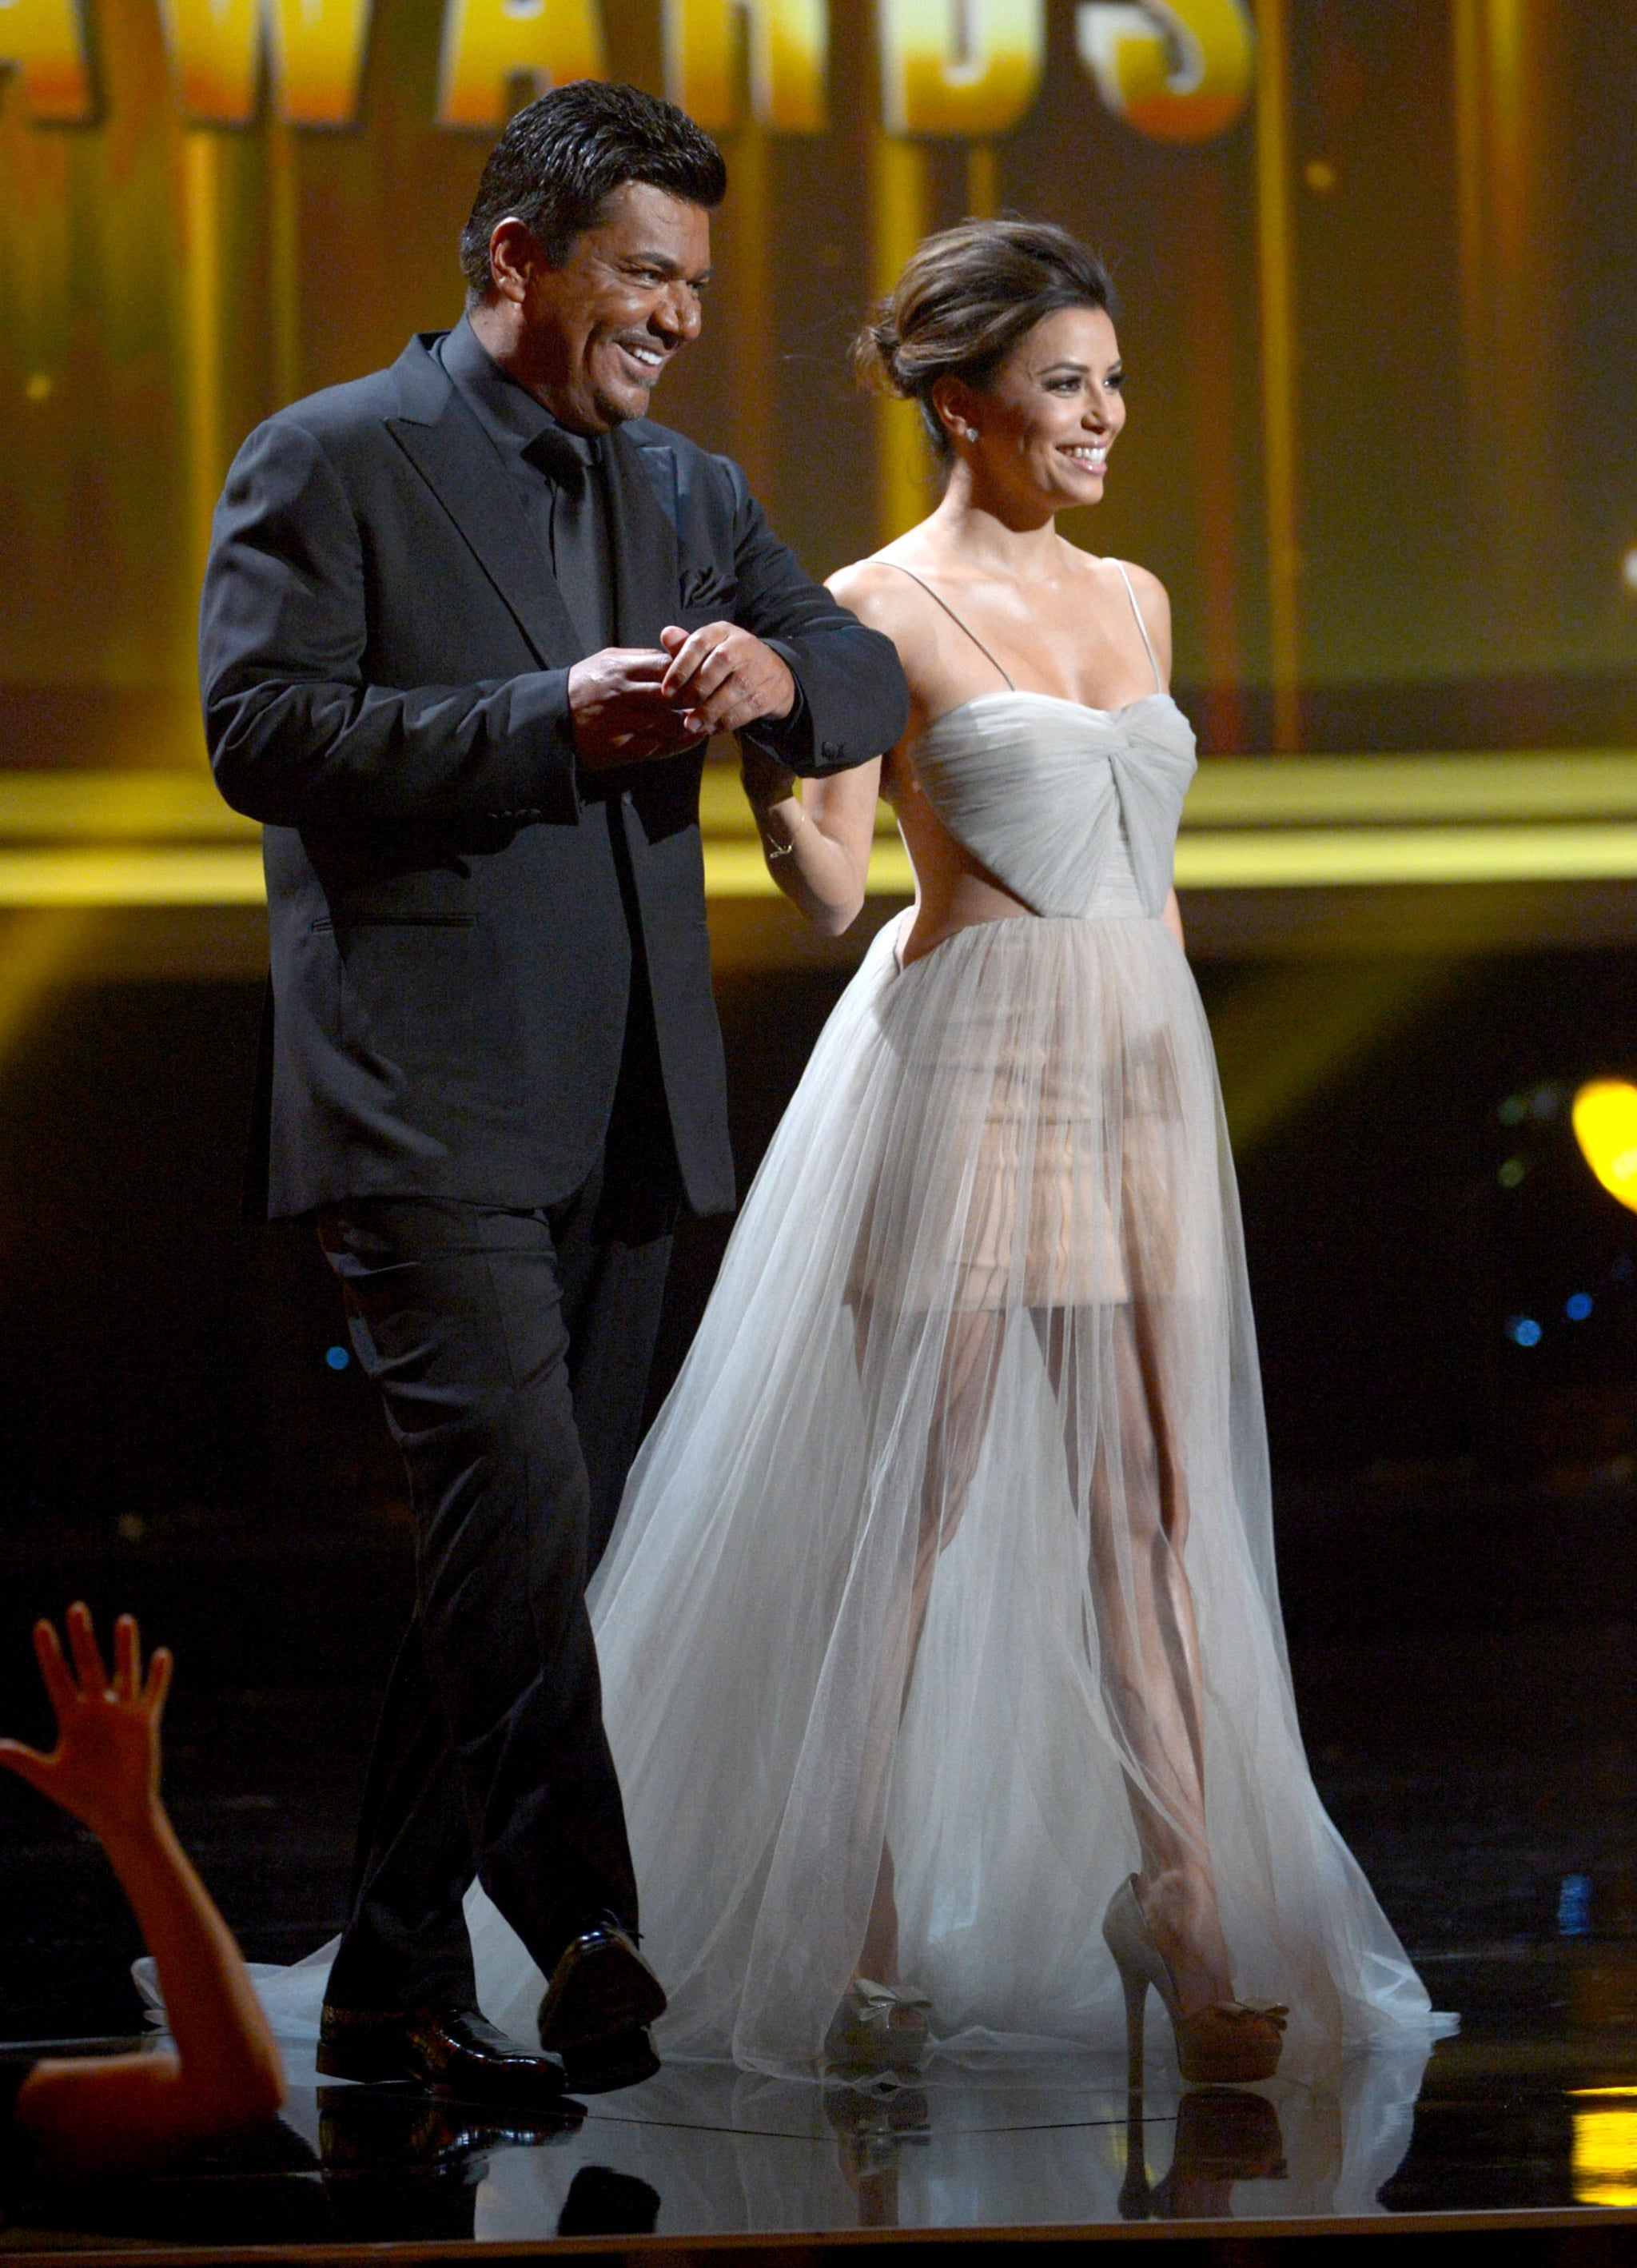 George Lopez escorted Eva Longoria out on the stage.